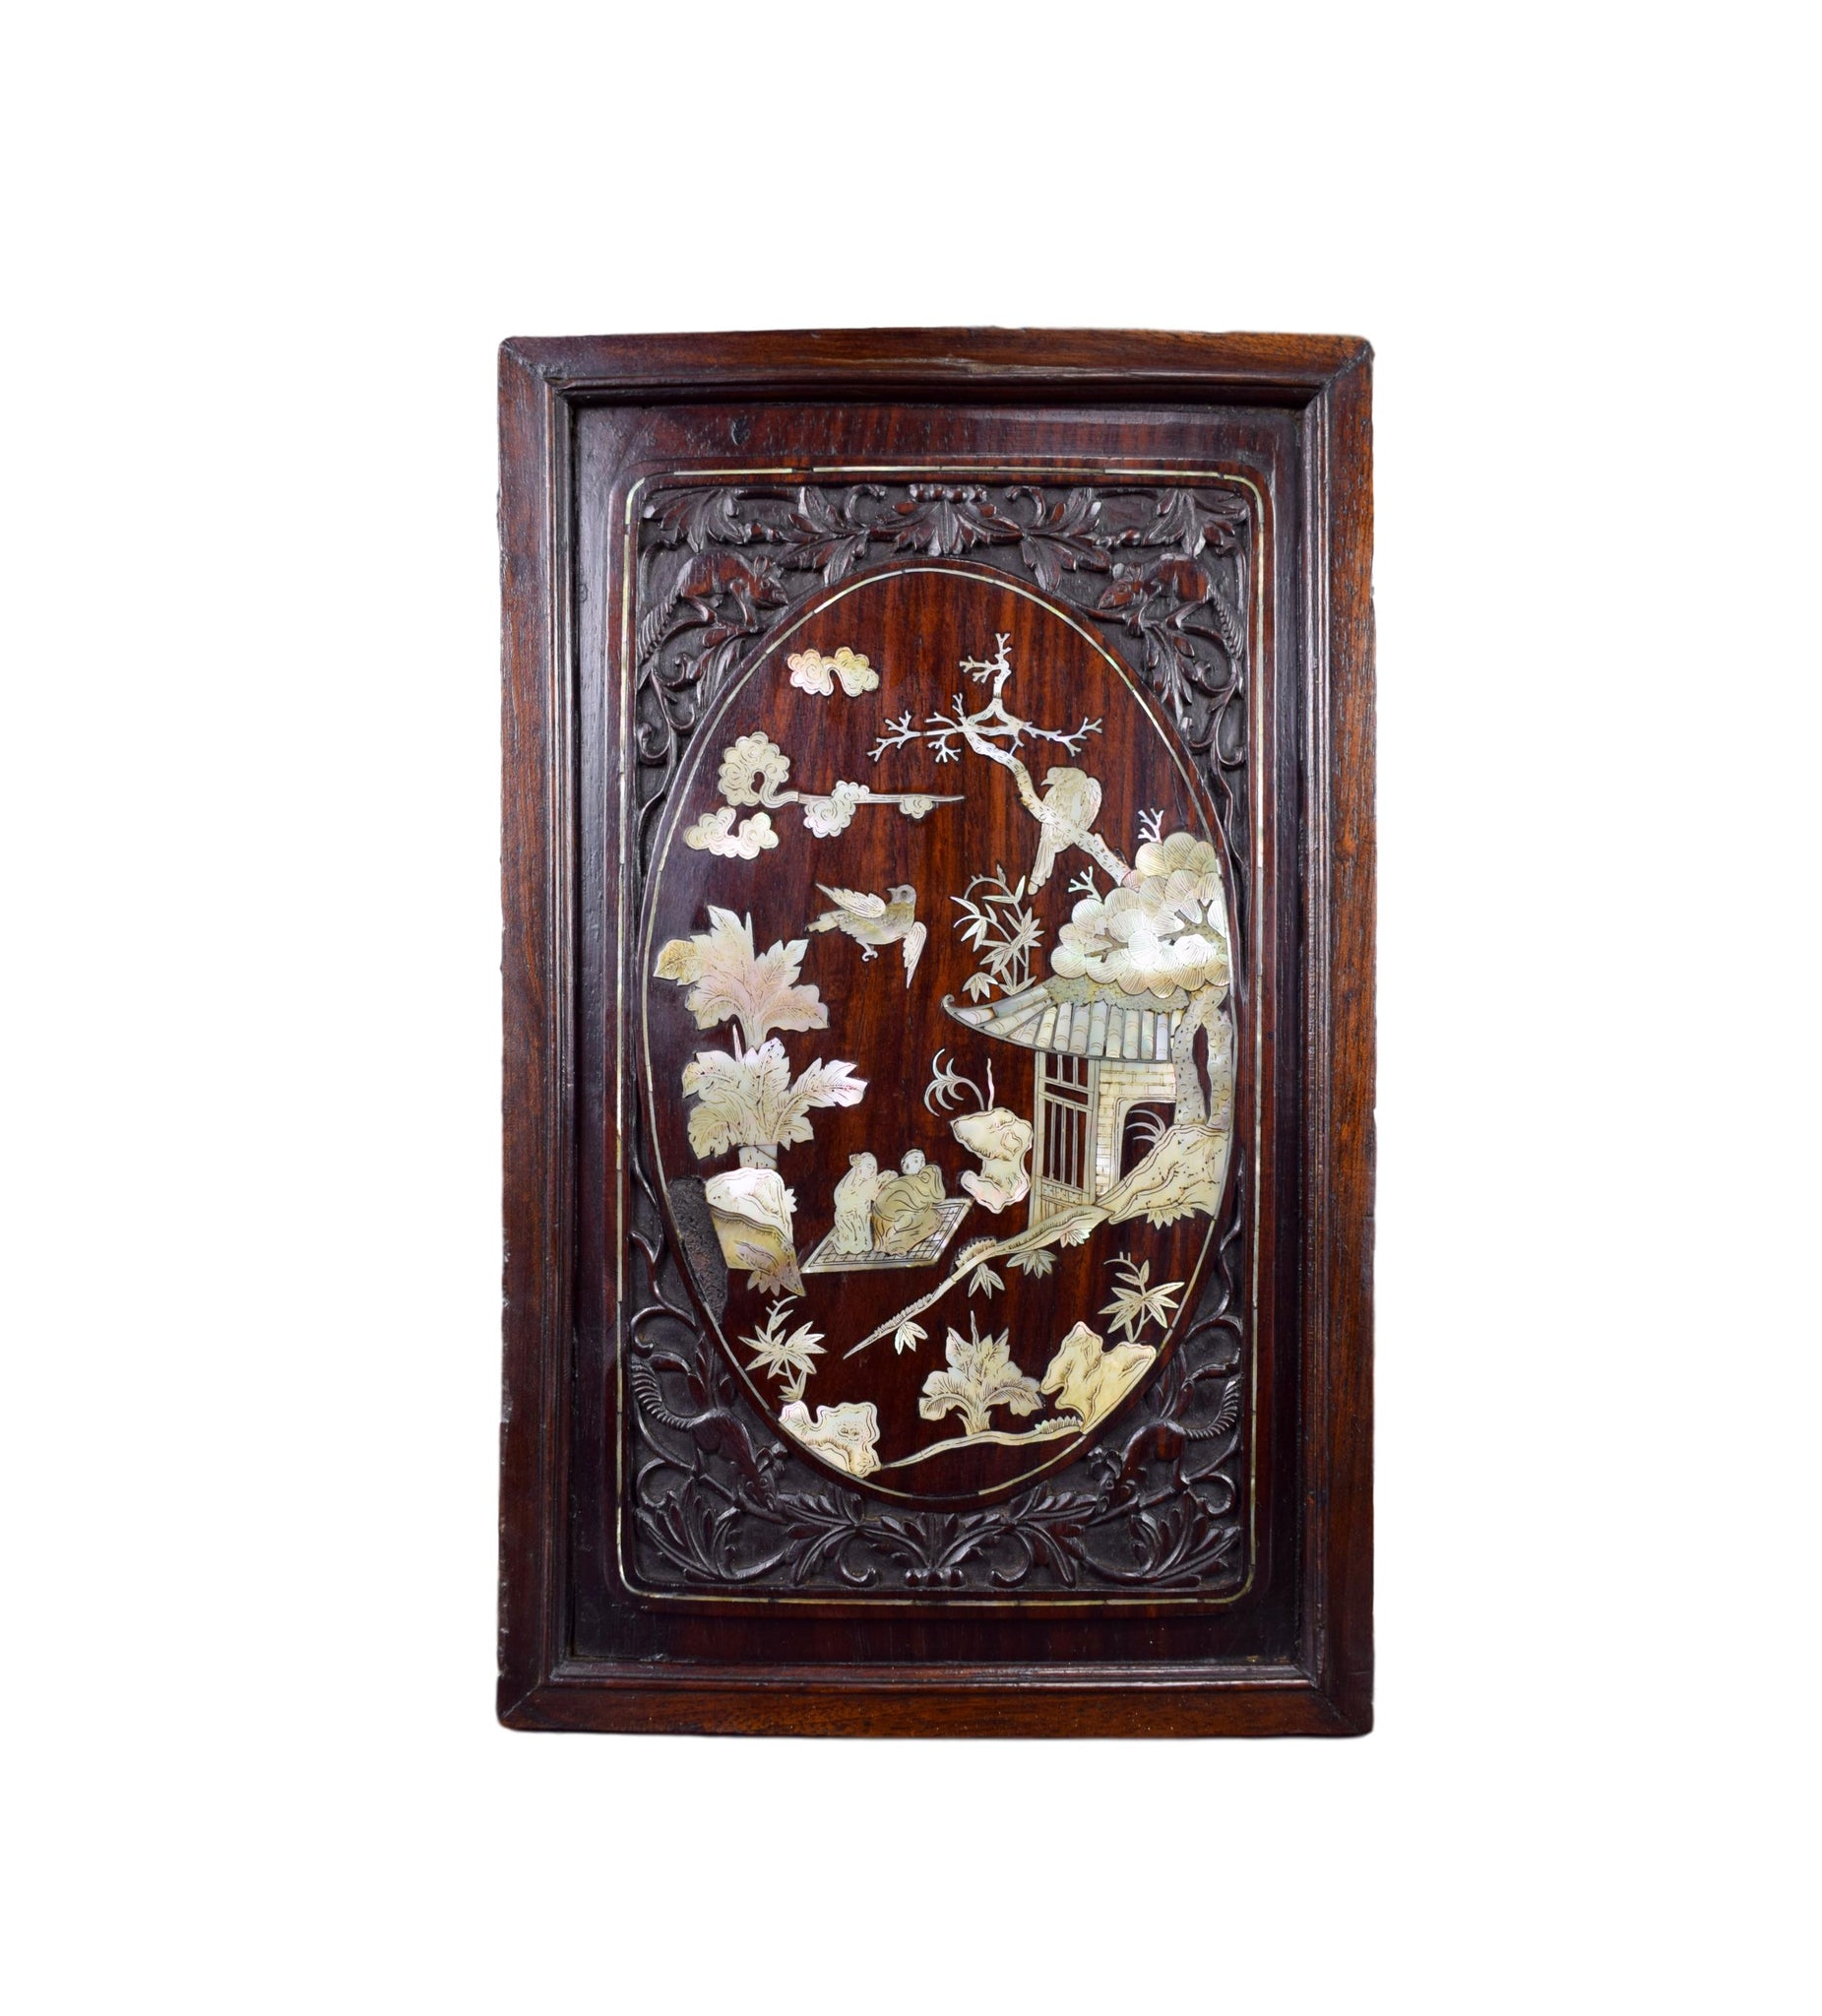 Antique Chinese Carved Wood and Mother of Pearl Inlaid Wall Panel 19th.C Asian Wood Art Vietnamese